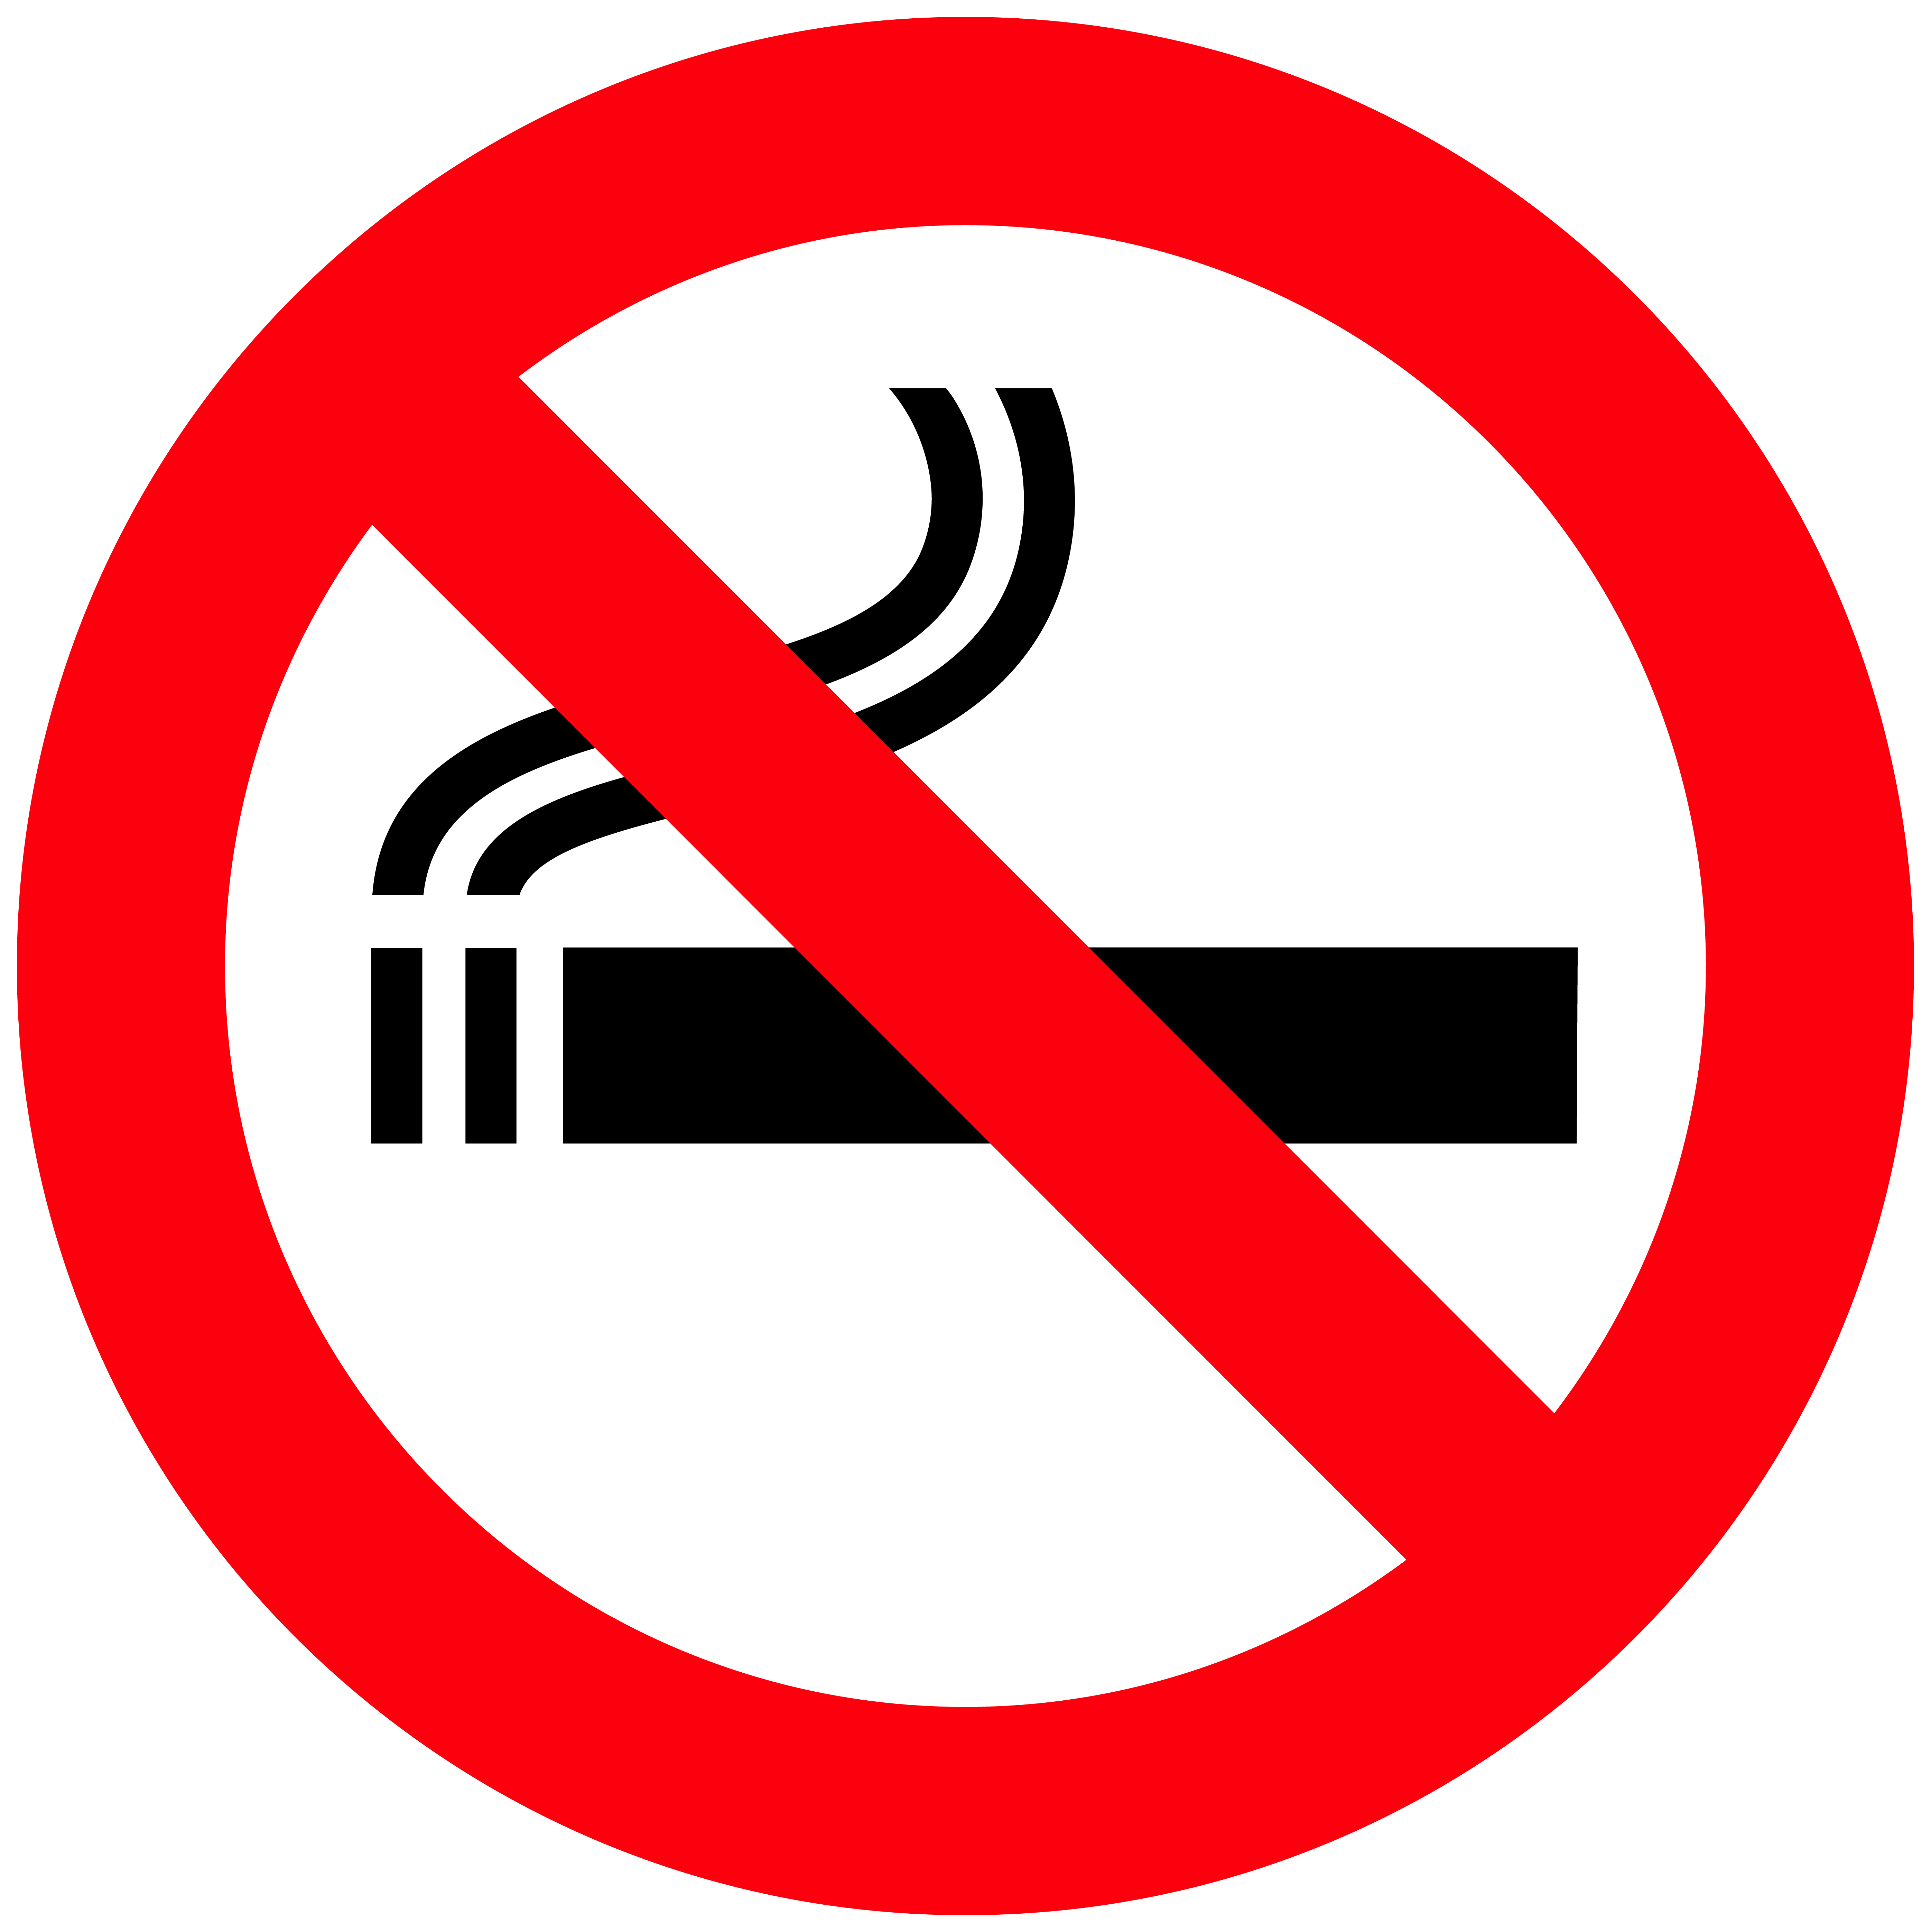 No sign png. Tobacco transparent images pluspng